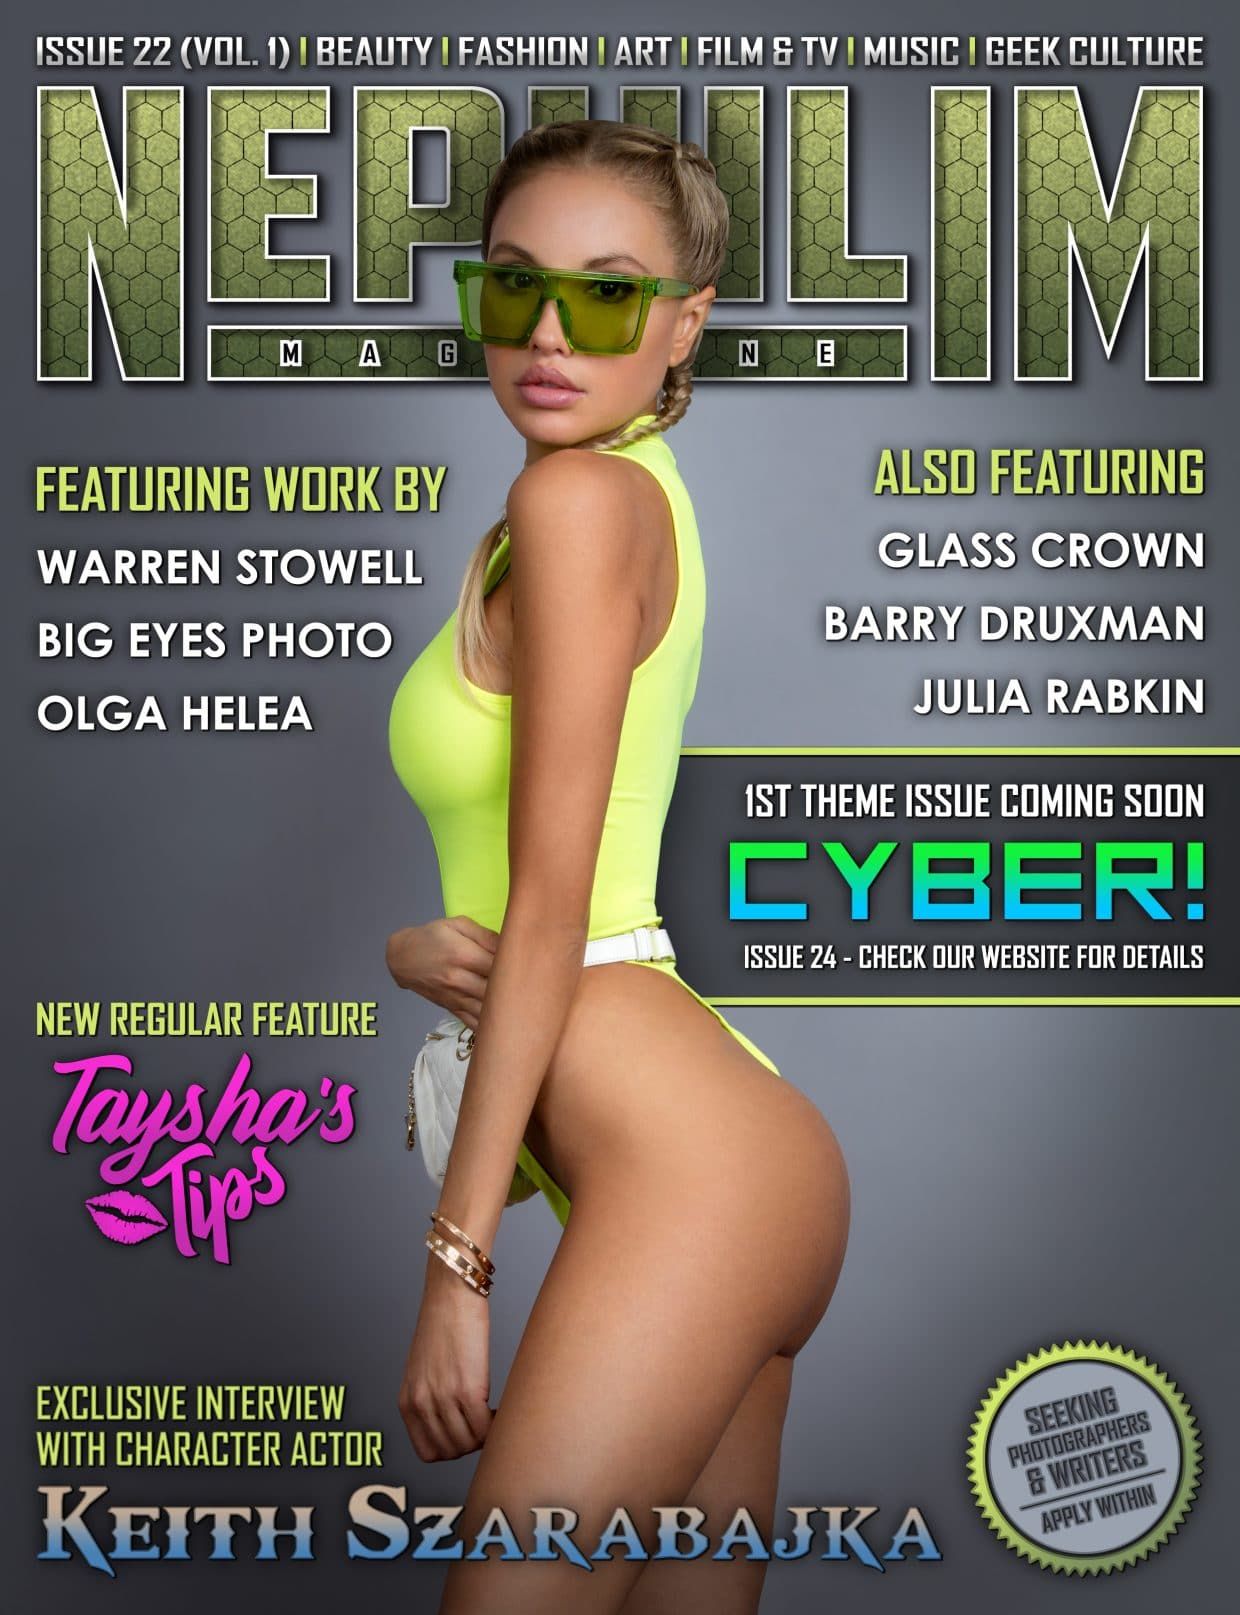 Nephilim Magazine - Issue 22 - Vol. 1 1